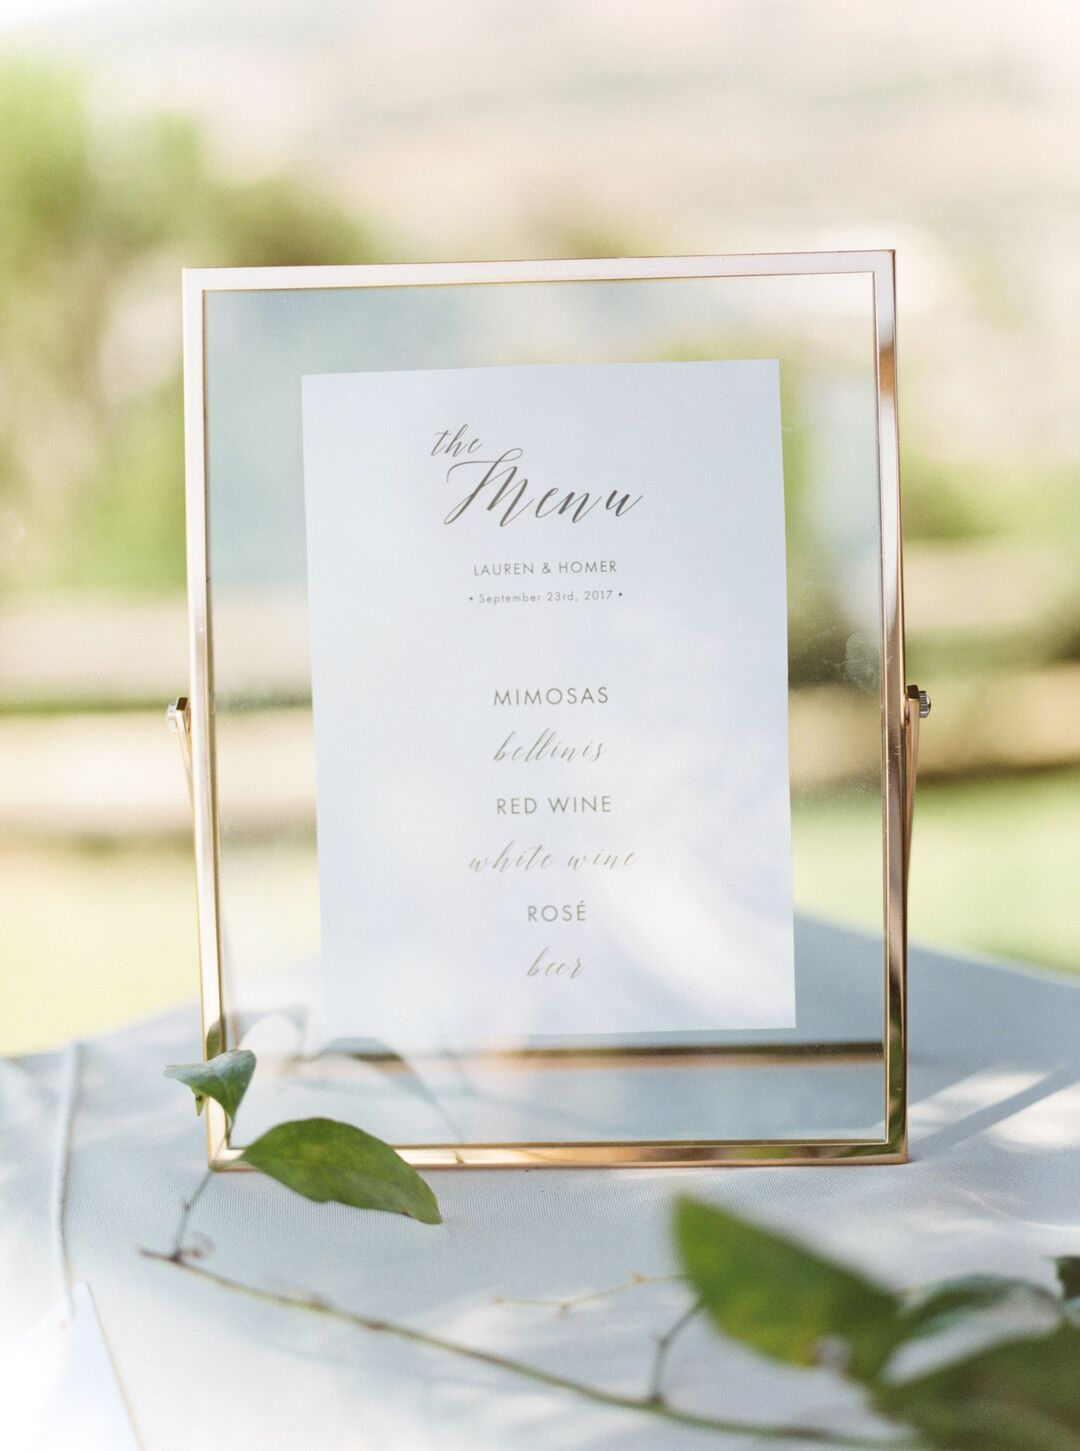 wwww.santabarbawedding.com | Planner: Vintage Heart Events | Ceremony Venue: Serra Cross Park | Photographer: Haley Richter Photography | Reception Menu